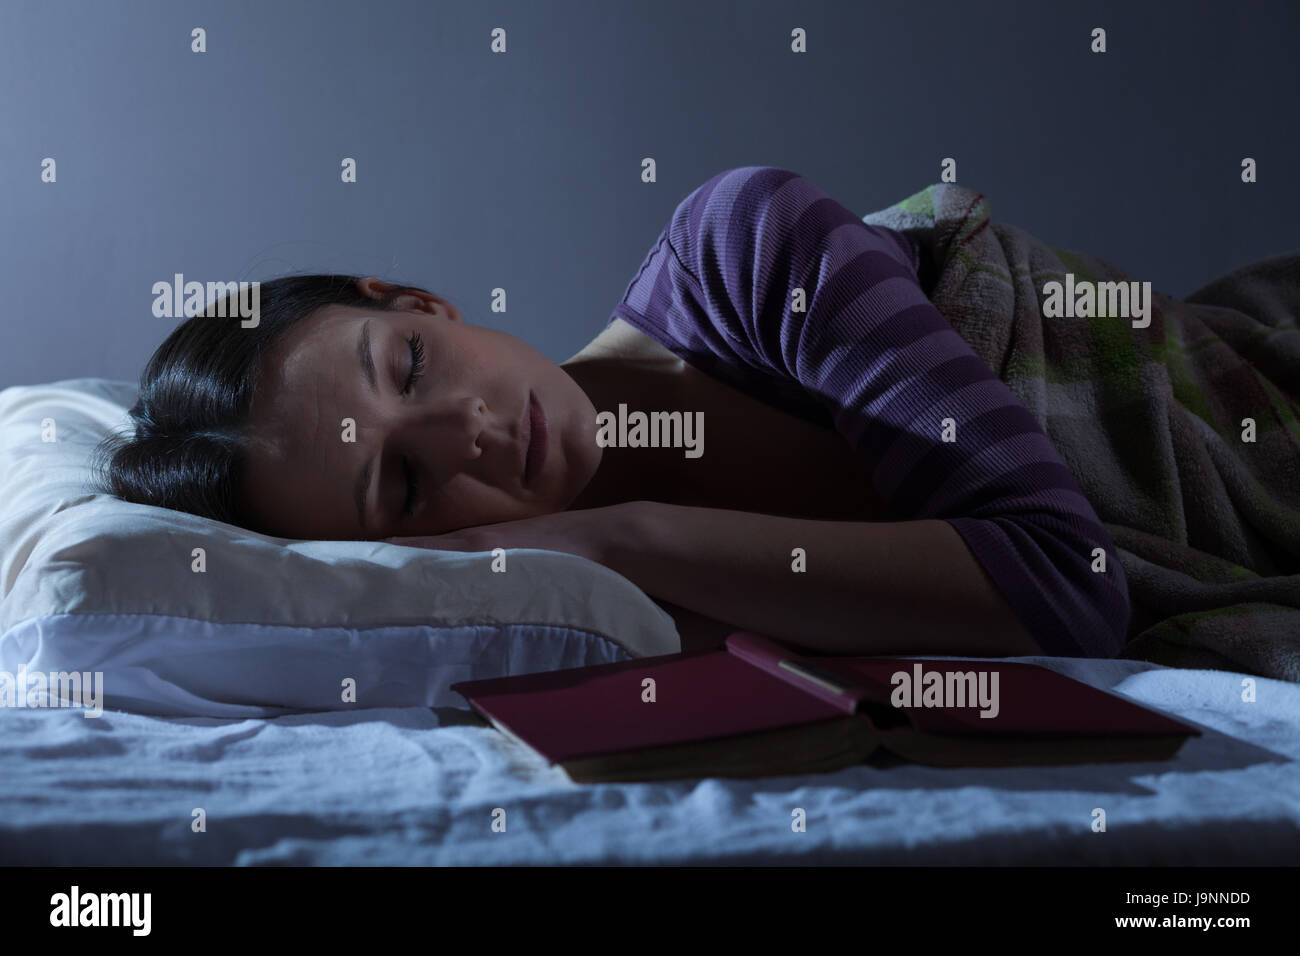 Young woman is sleeping in her bed - Stock Image